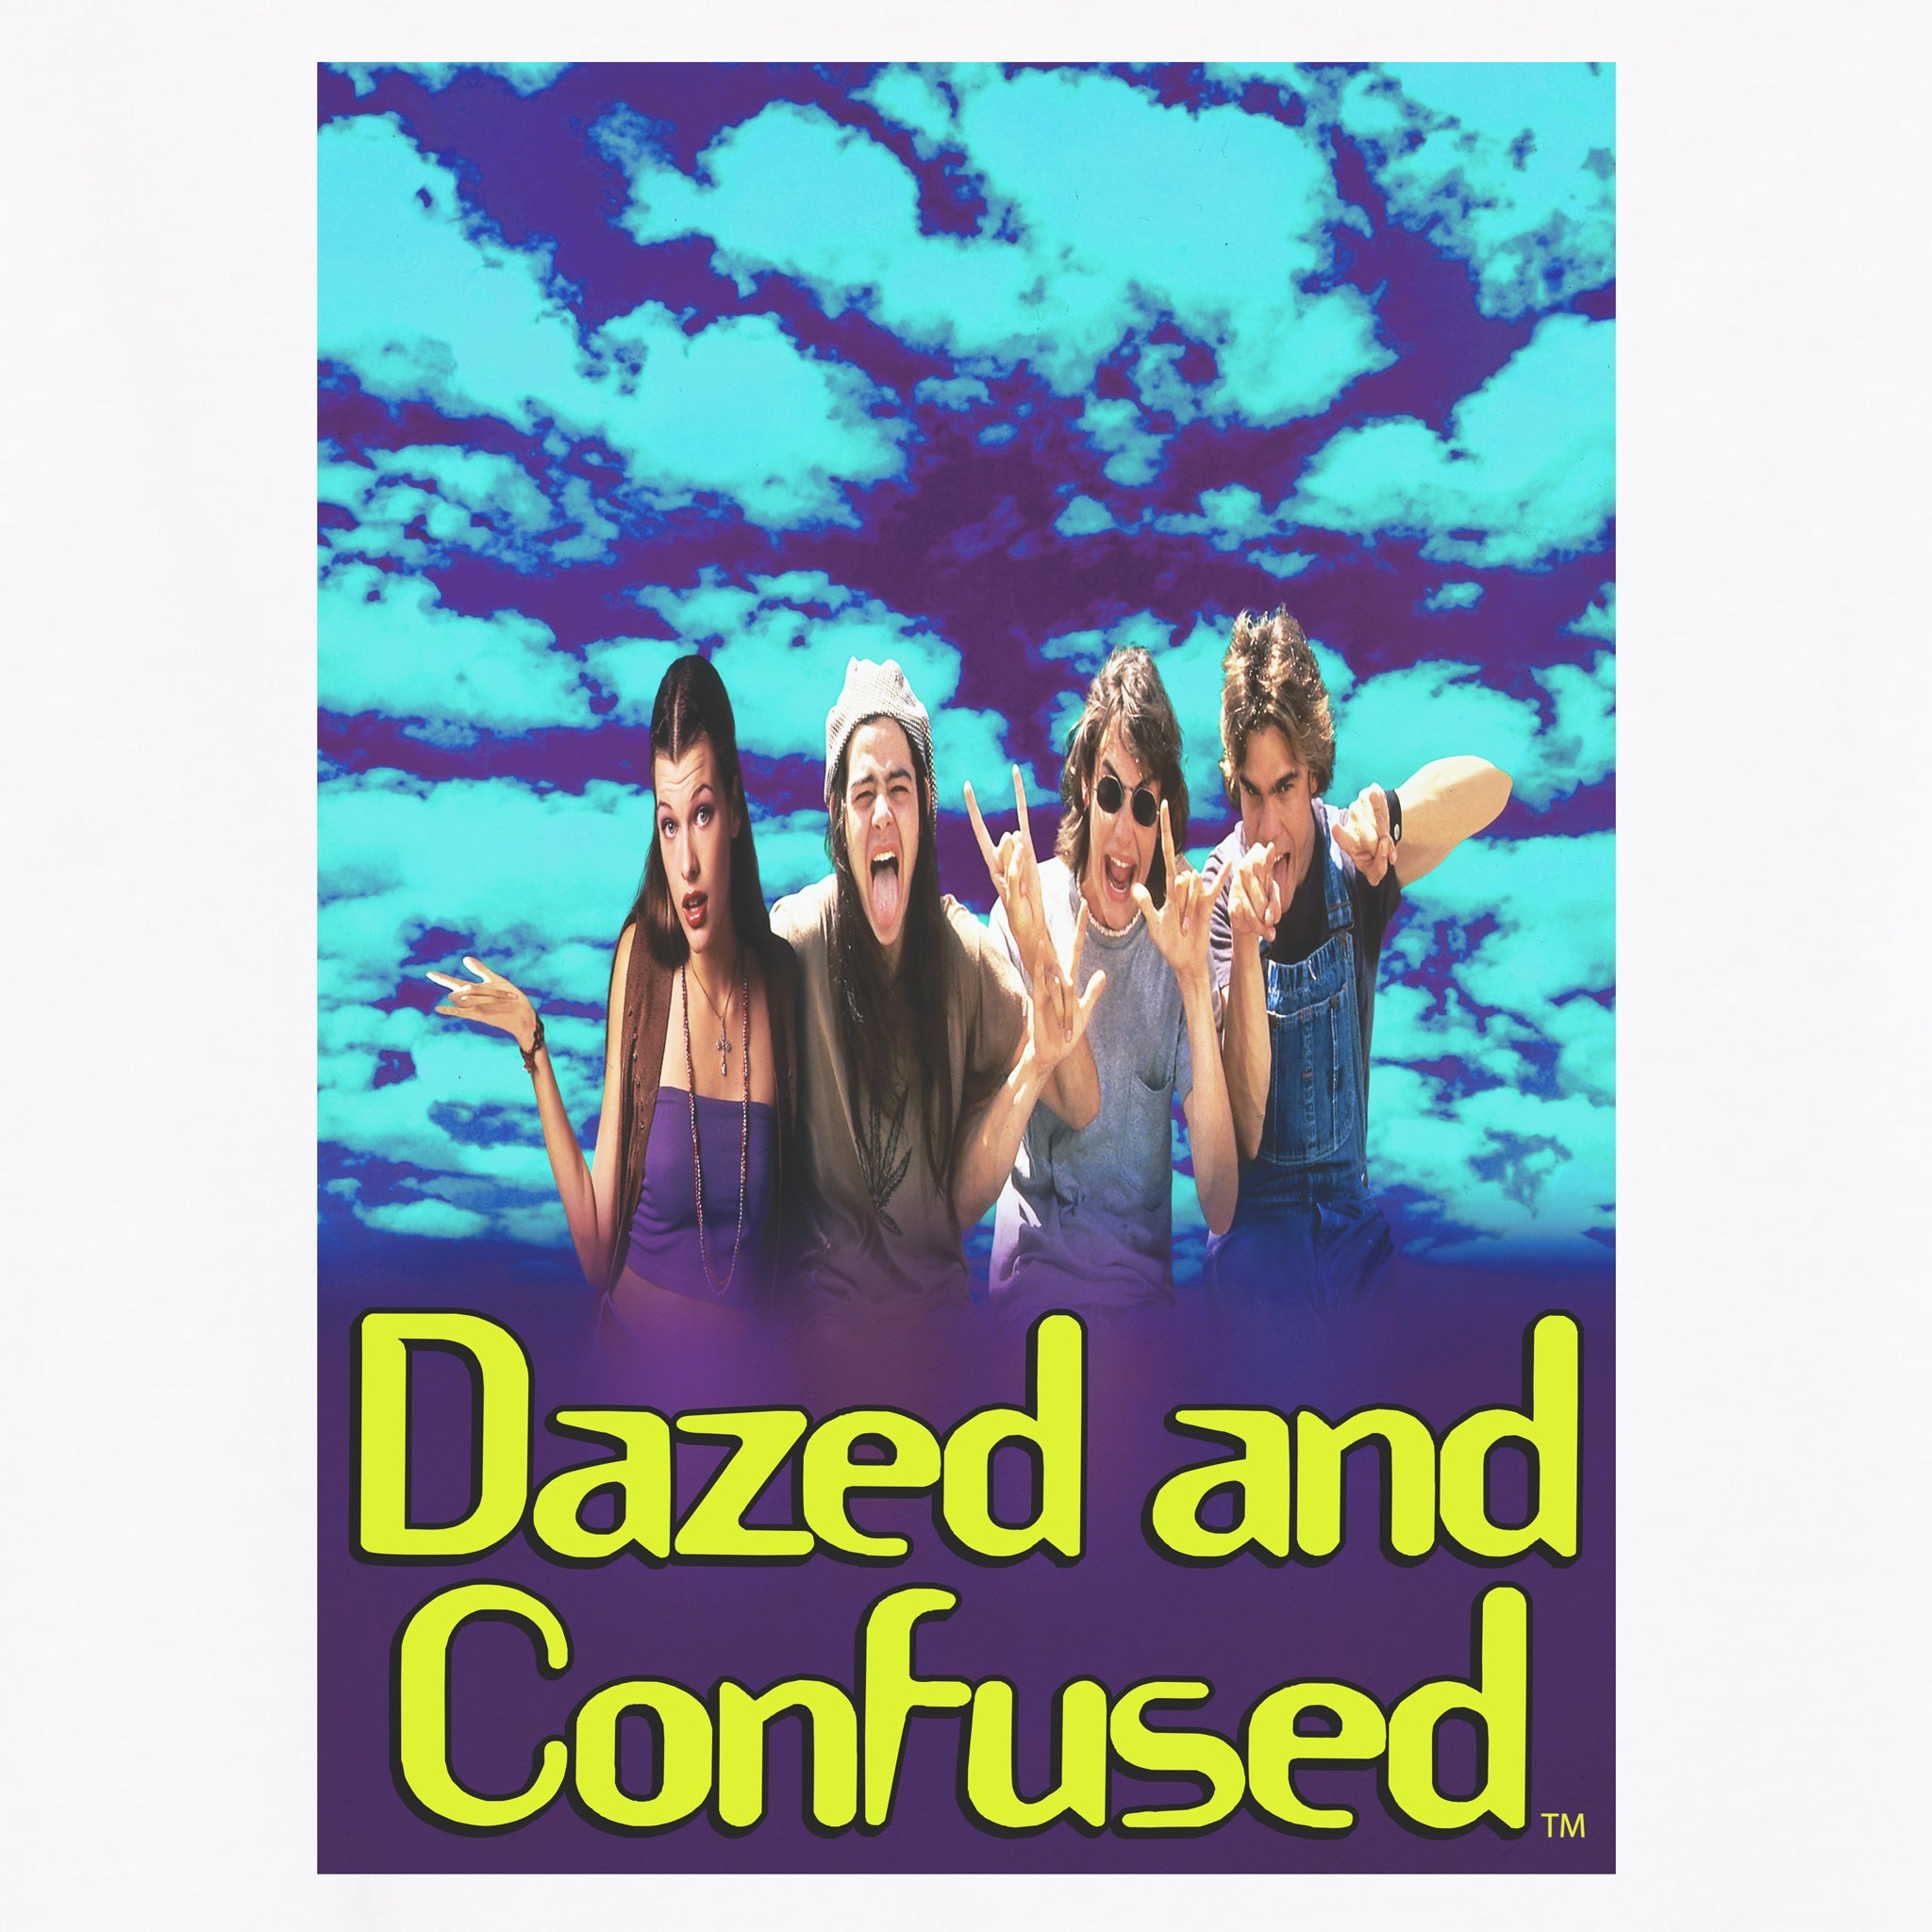 dazed and confused 25th anniversary group t-shirt graphic shirt apparel culturefly